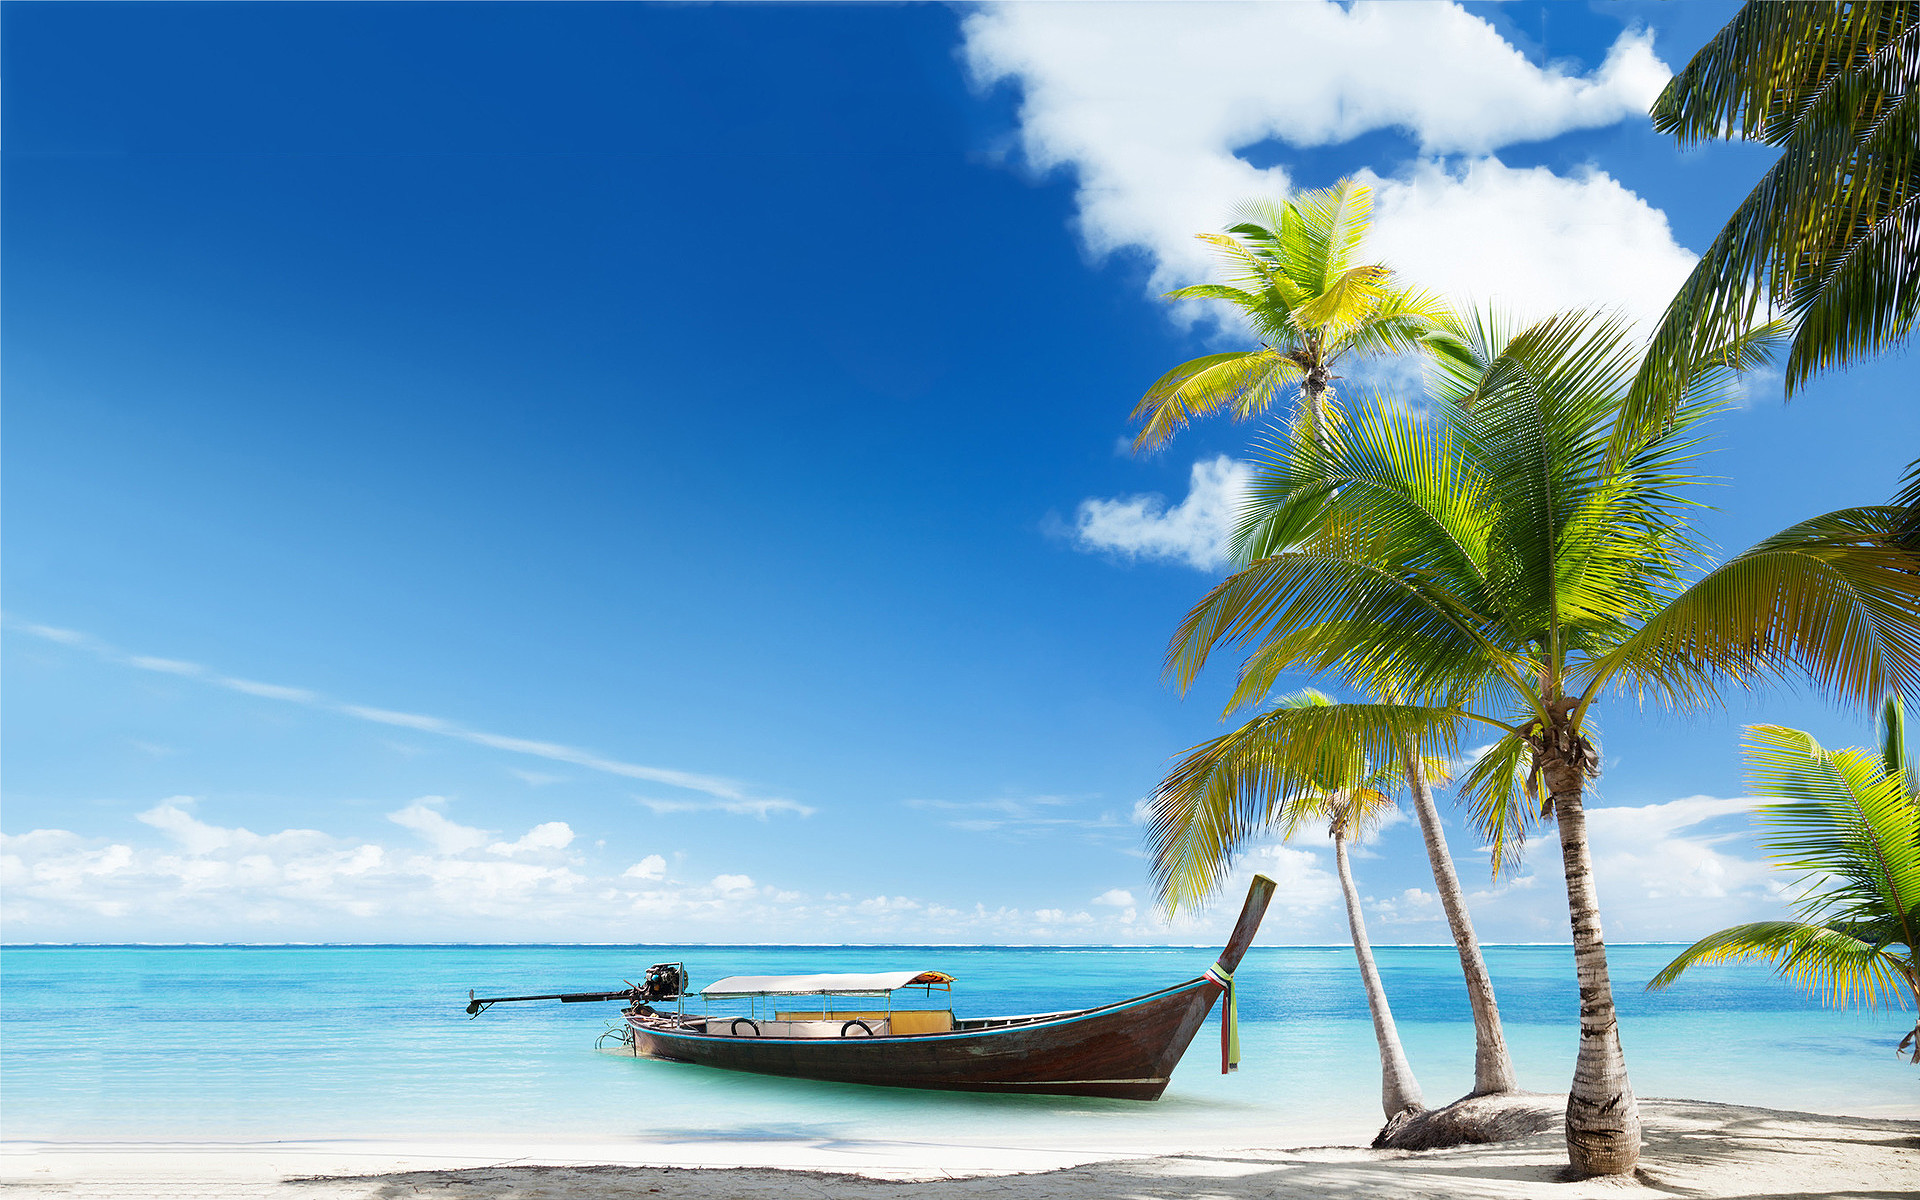 1920x1200 Free Beach Screensavers And Wallpapers Boat On Tropical Beach photos .